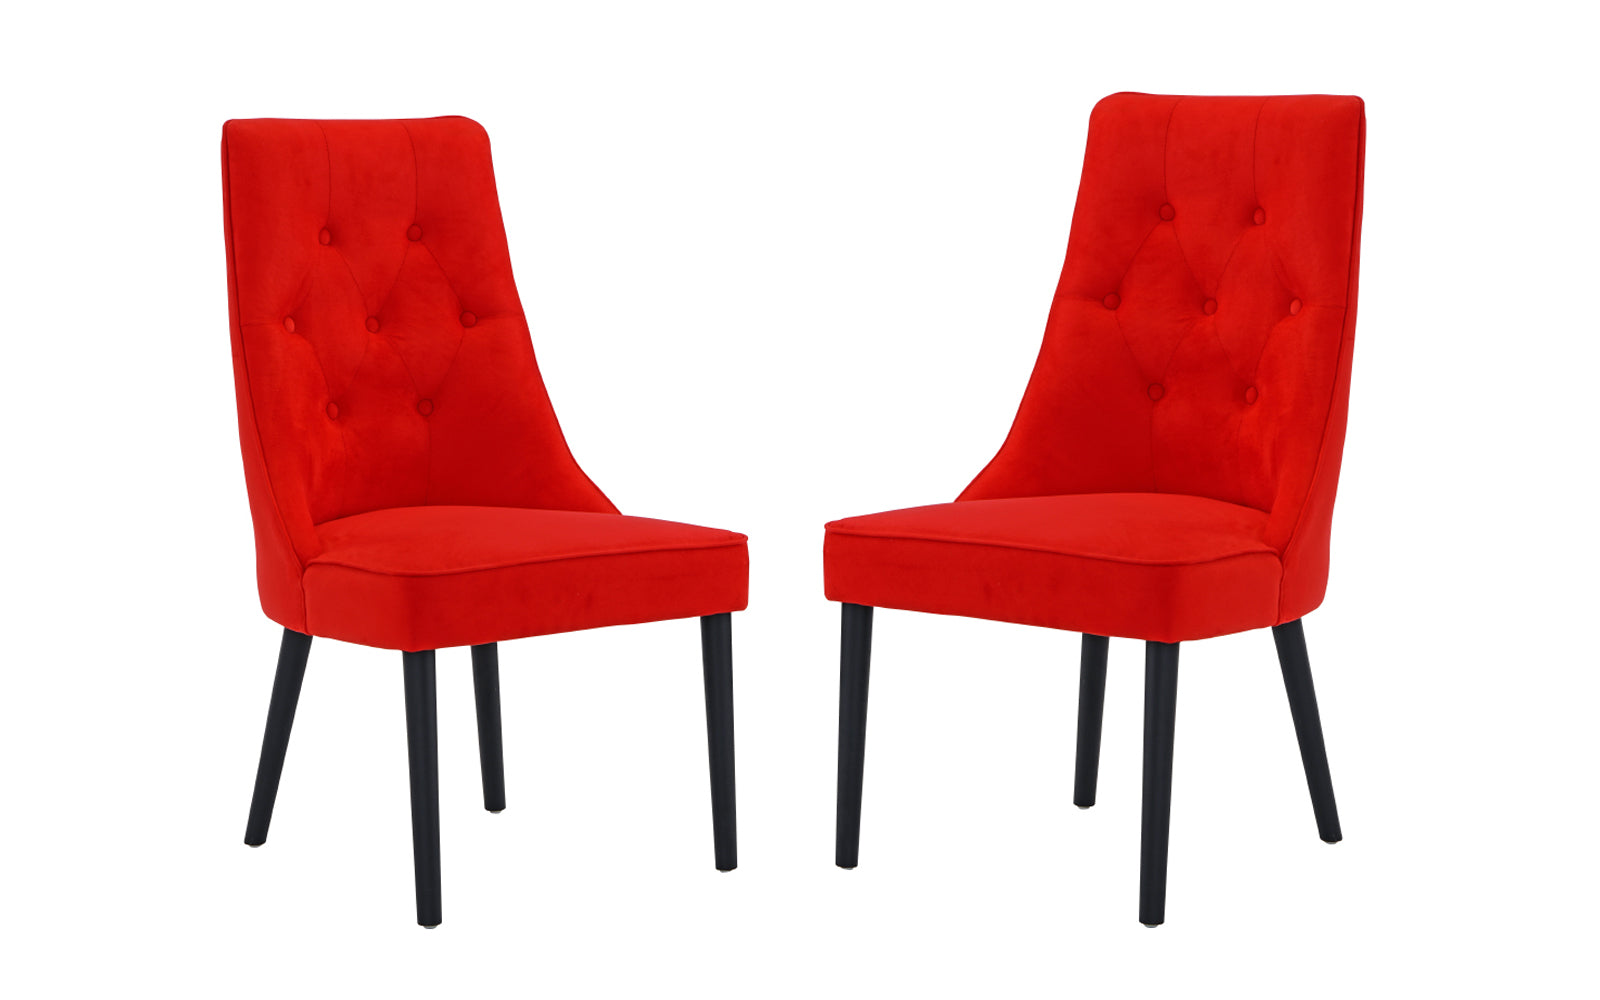 Microfiber Revival Dining Chairs Image